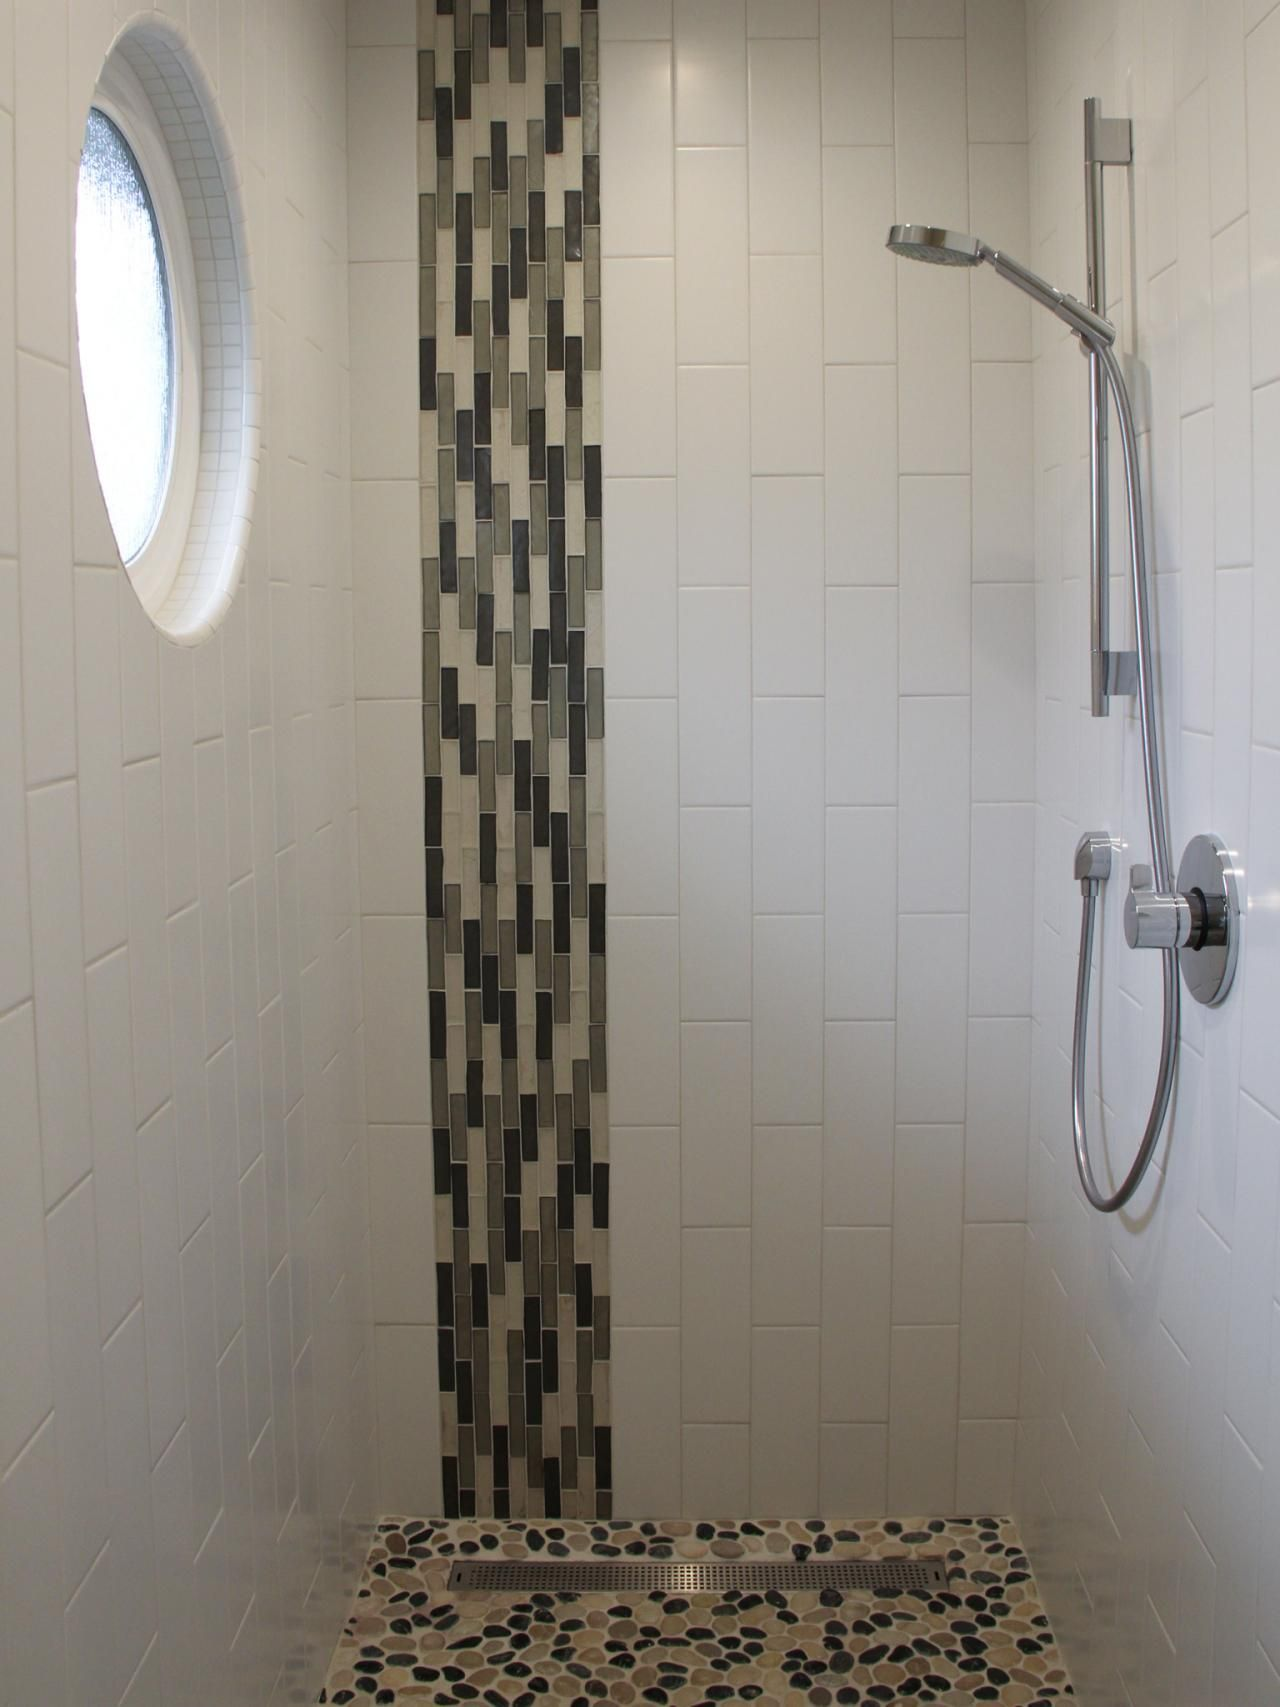 Bathroom Tile Designs With Mosaics Extraordinary Grey Bathroom